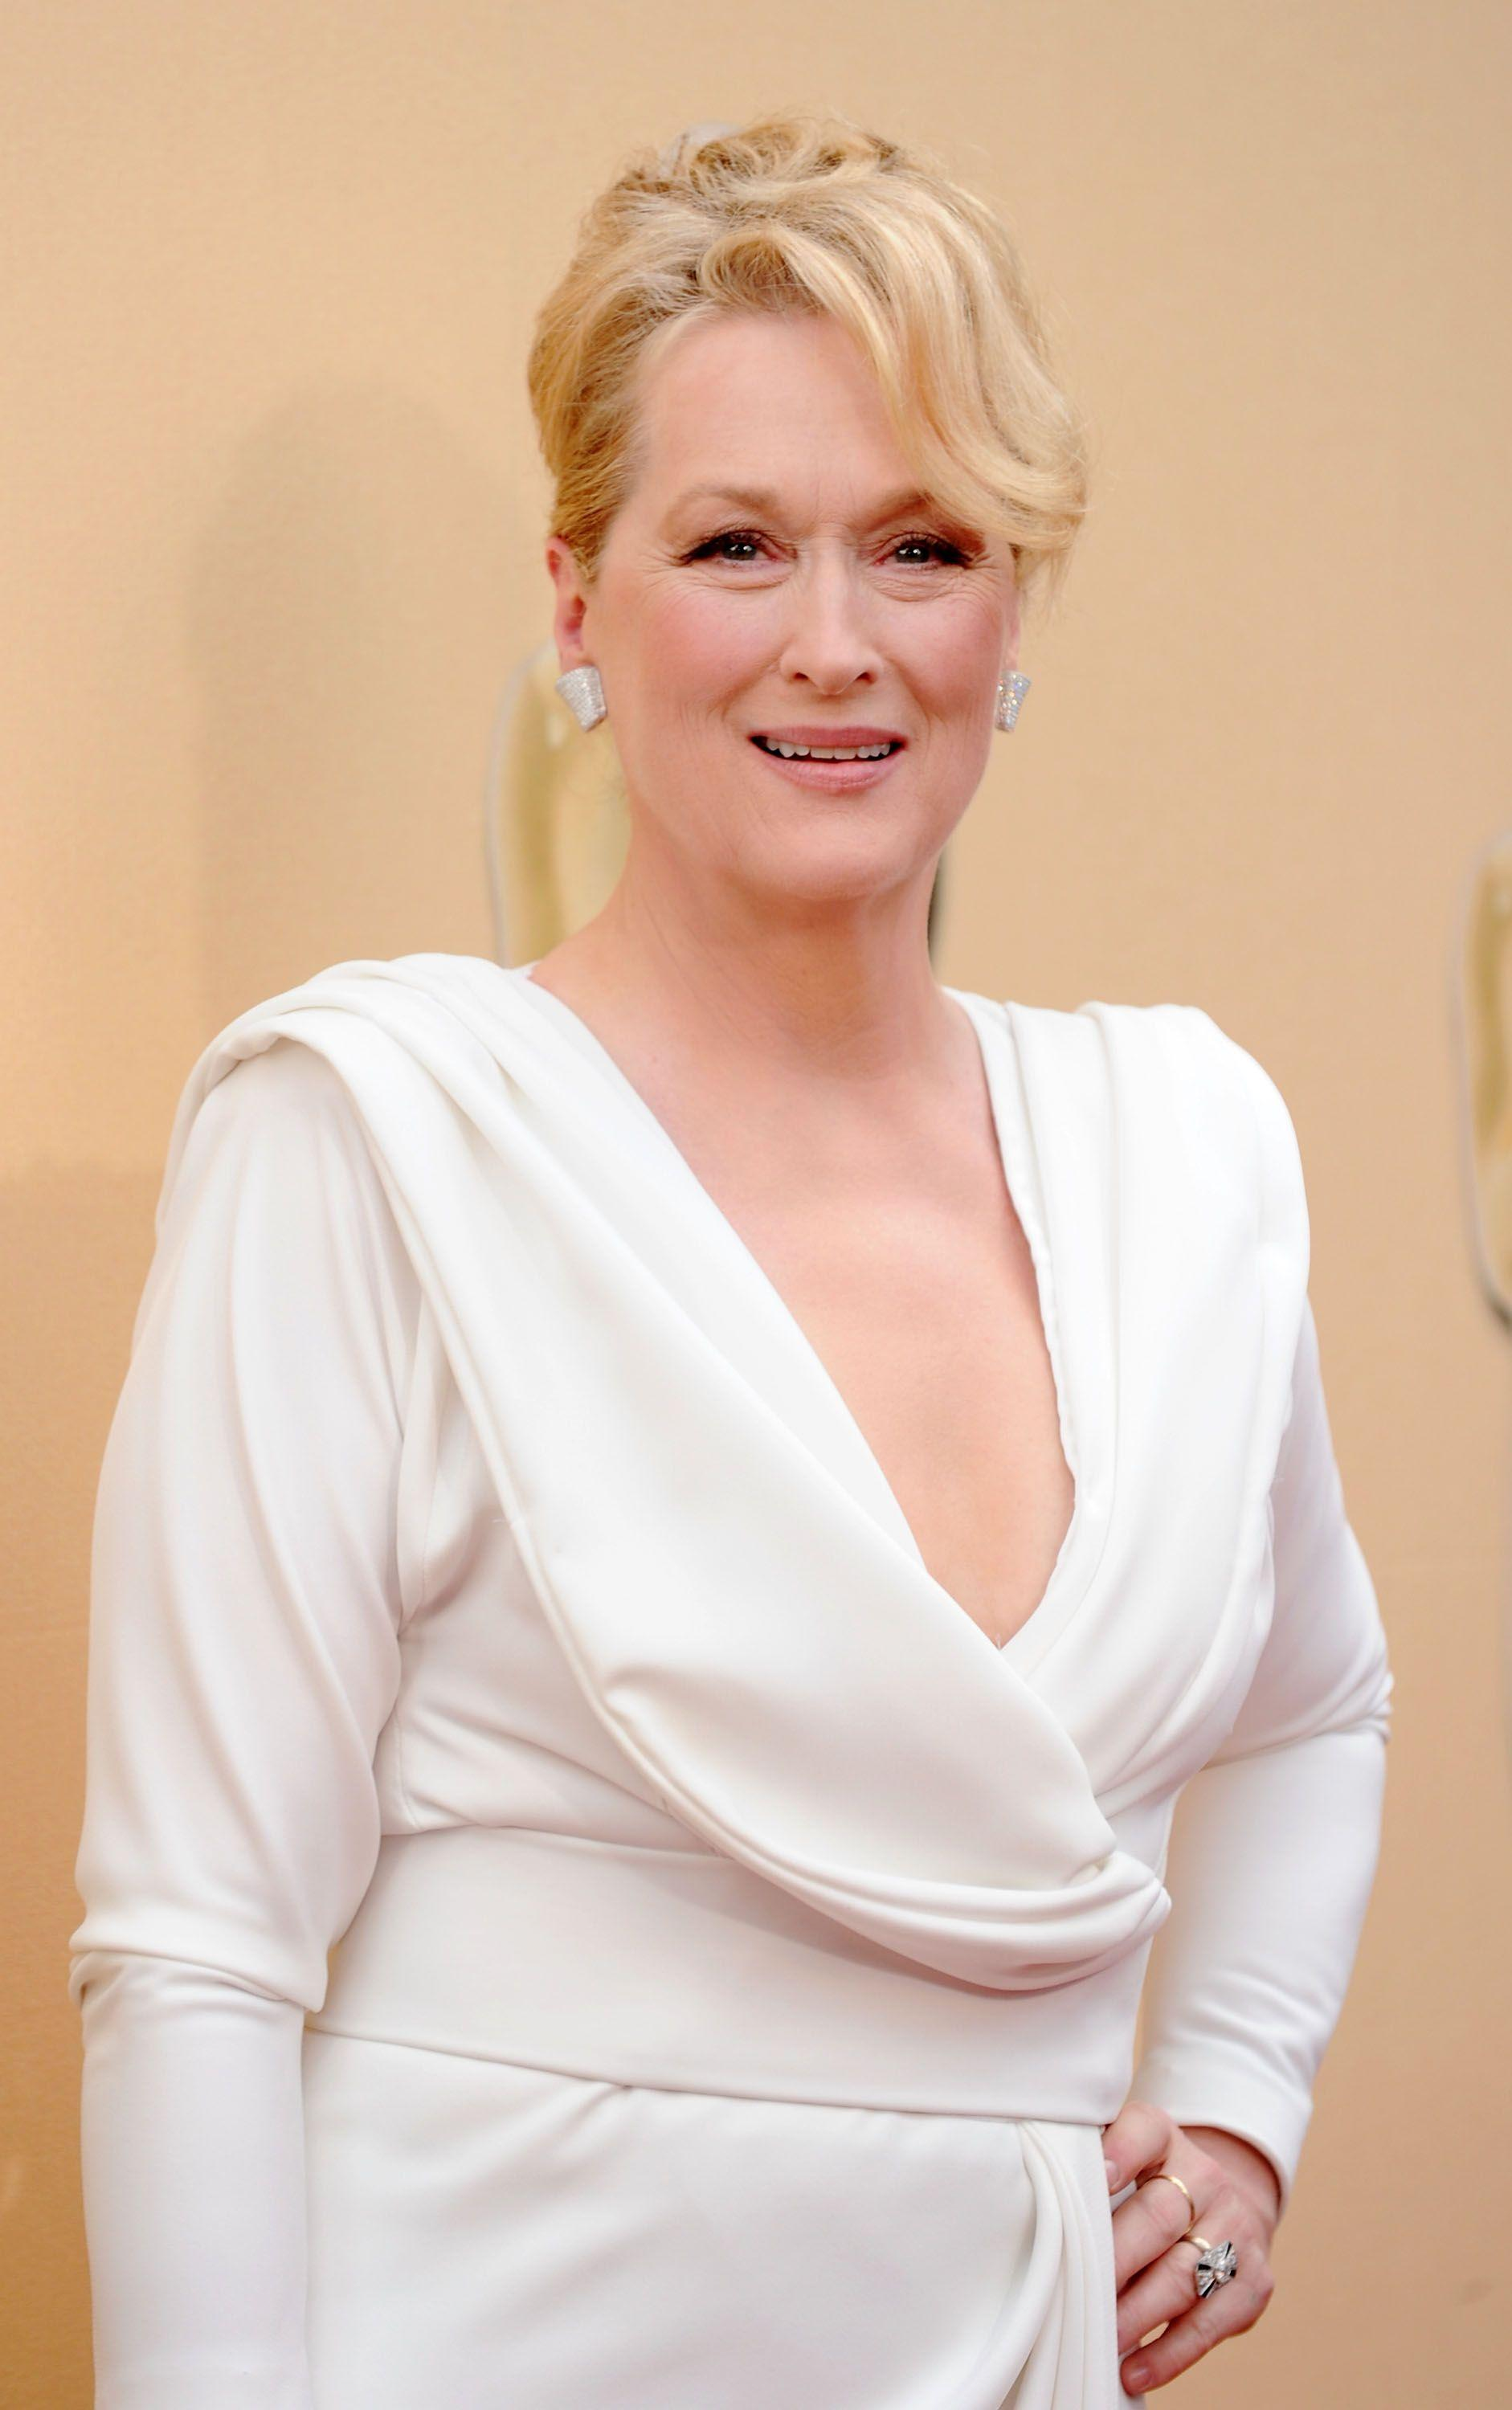 Meryl Streep photo 265 of 400 pics, wallpaper - photo #480992 ...